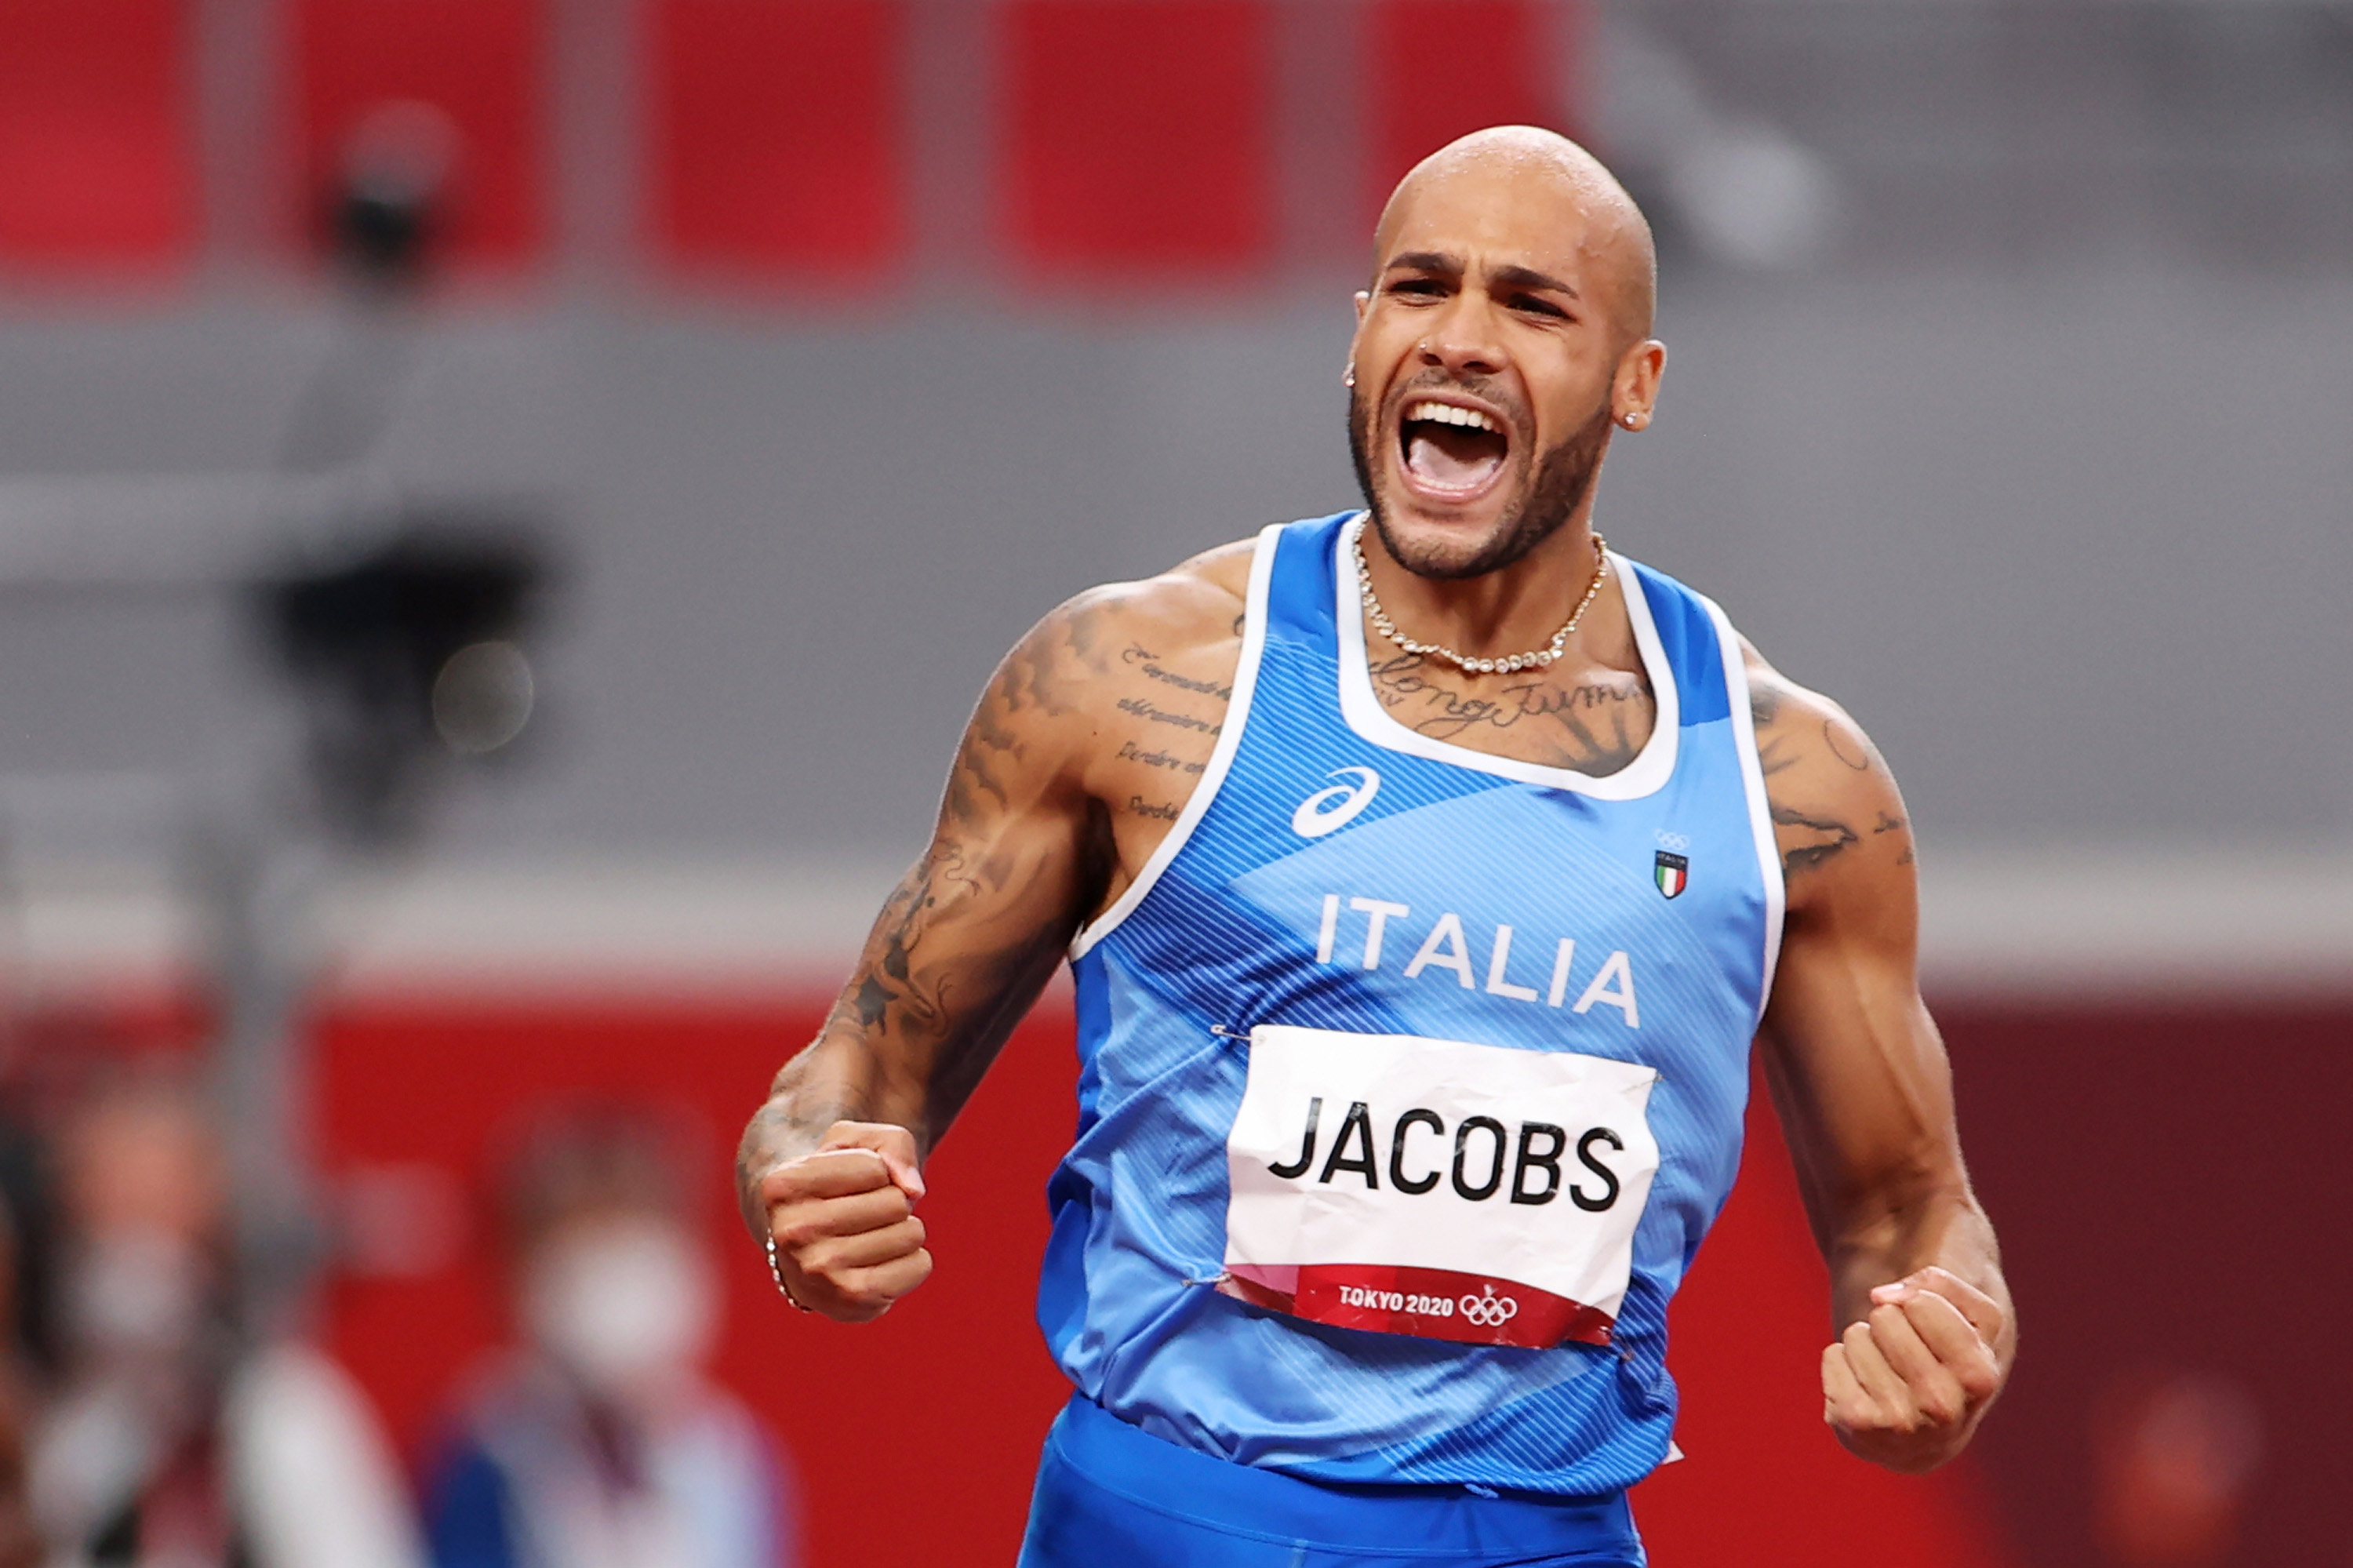 Lamont Marcell Jacobs celebrates becoming the first Italian man to ever win the men's Olympic 100m gold medal.